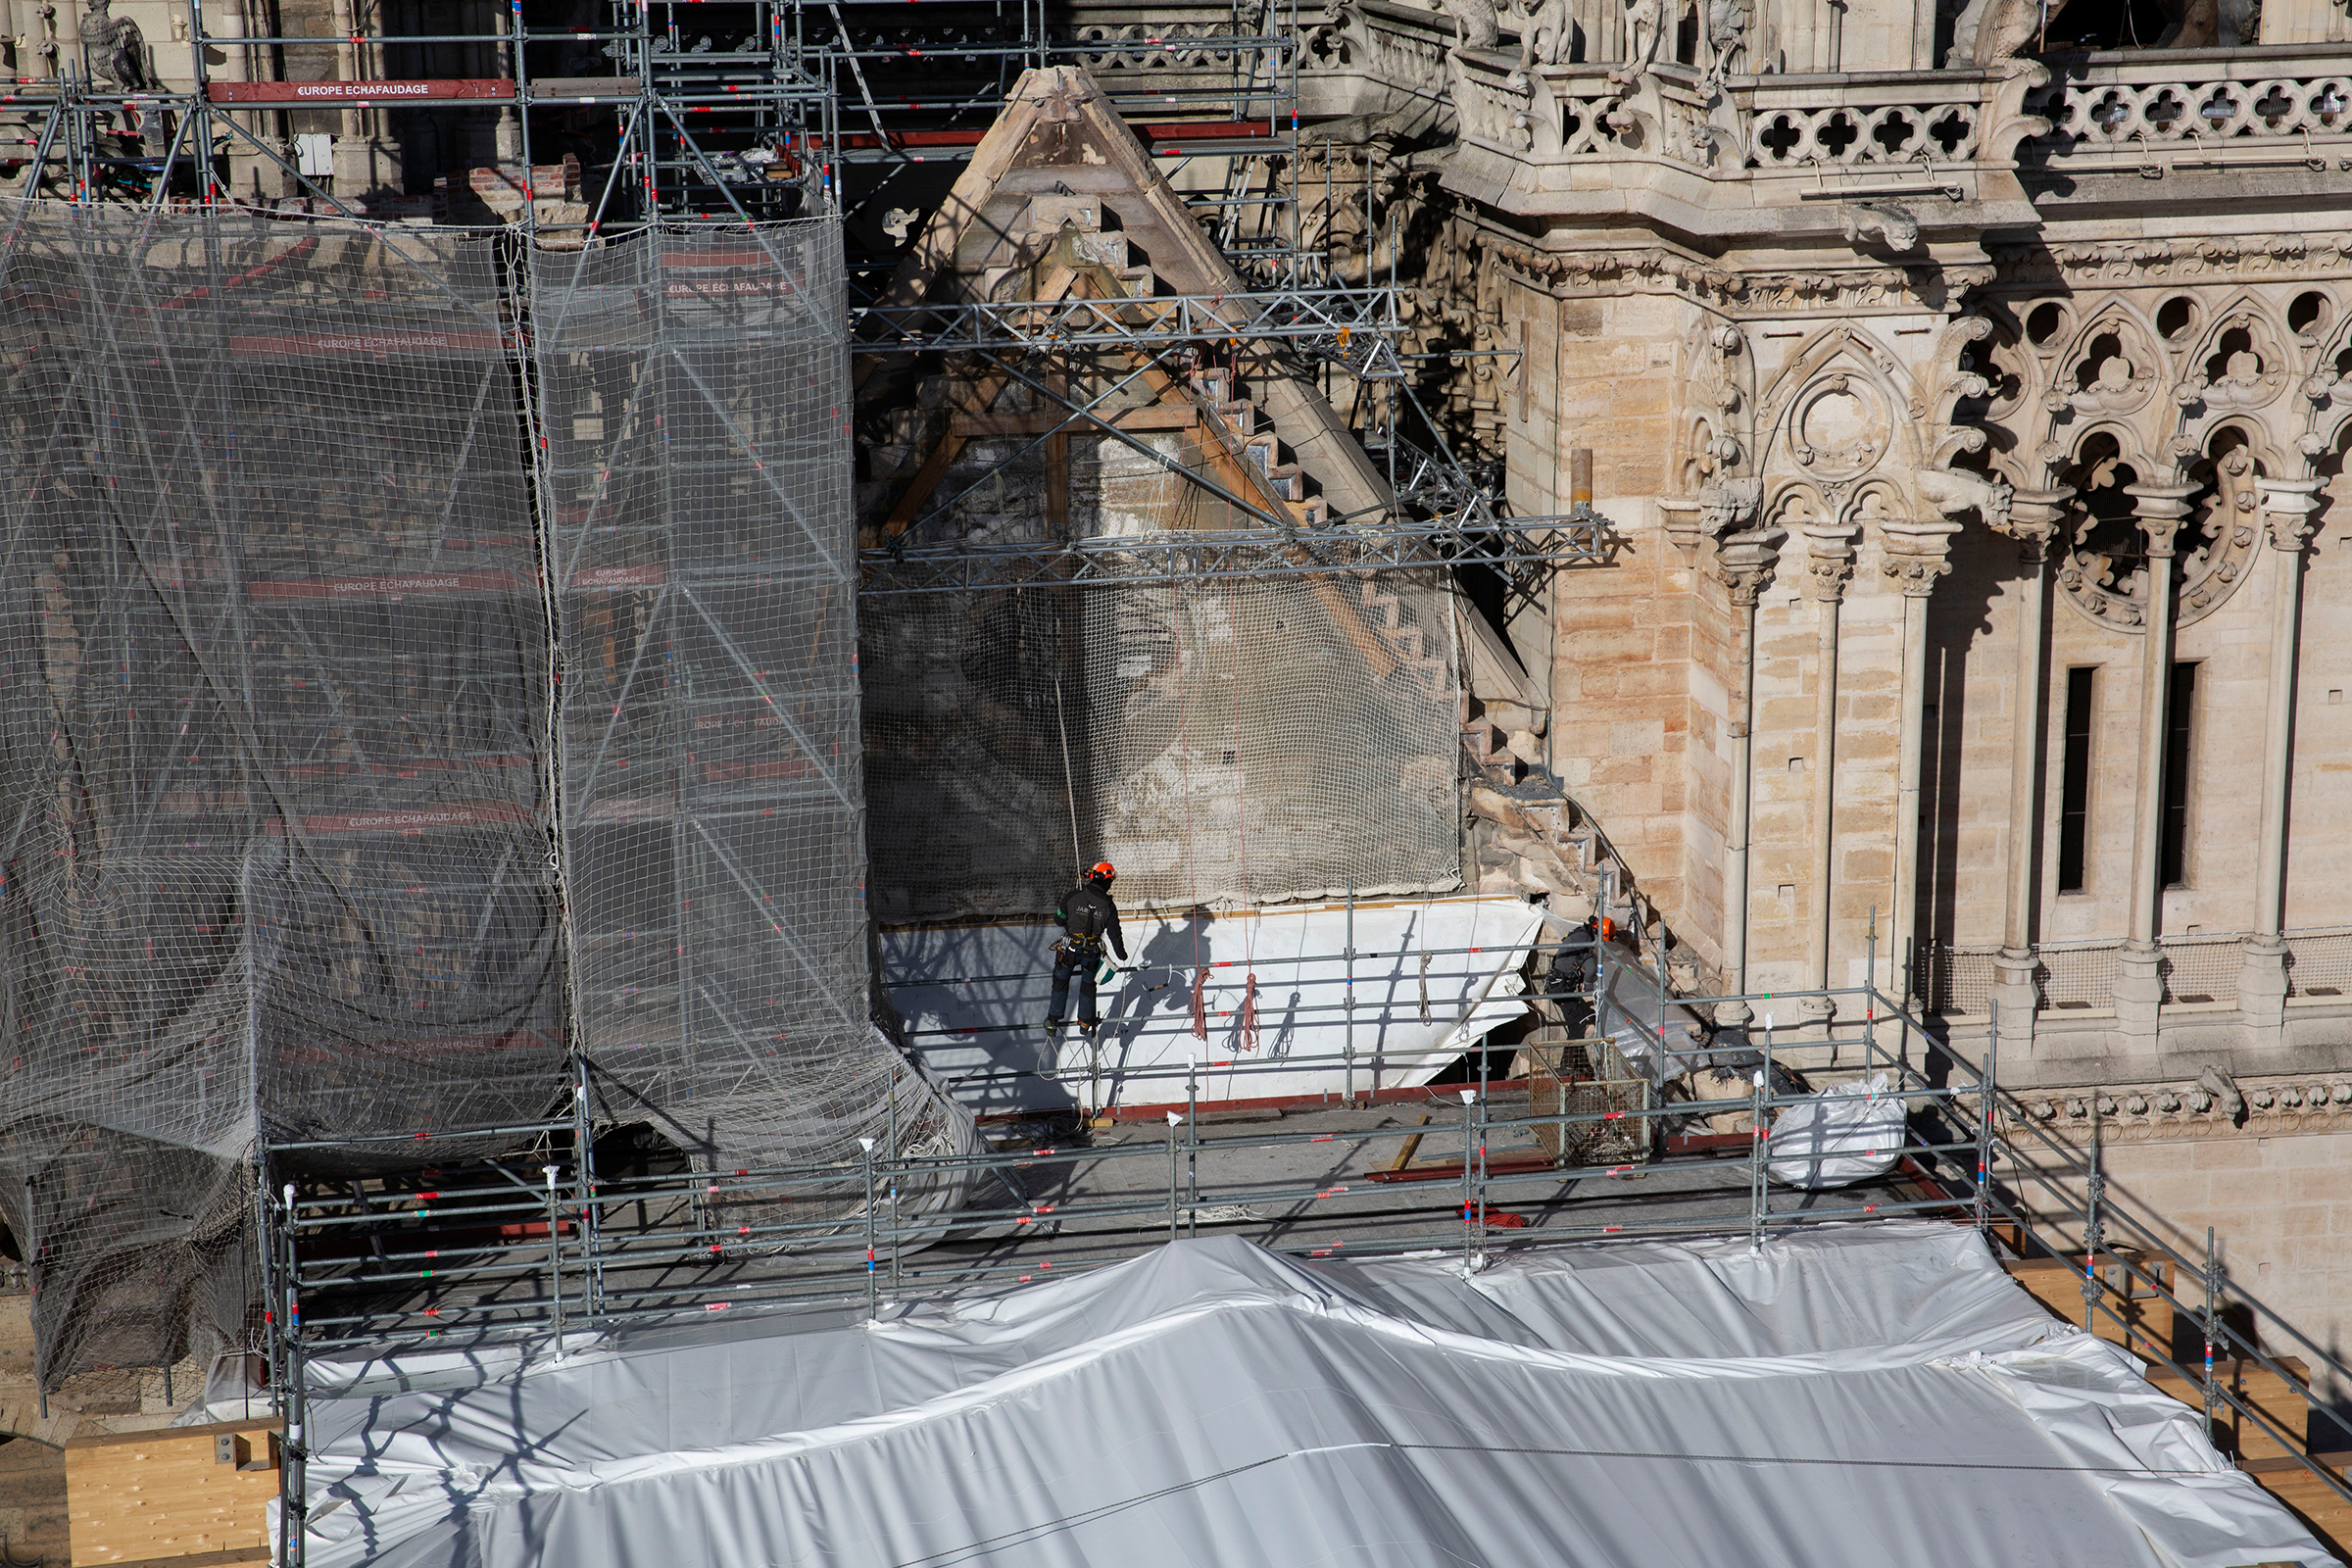 Macron's ambitious time frame for reopening Notre-Dame, seen in February, galvanized people into action and brought pledges of nearly a billion euros in donations for the reconstruction.